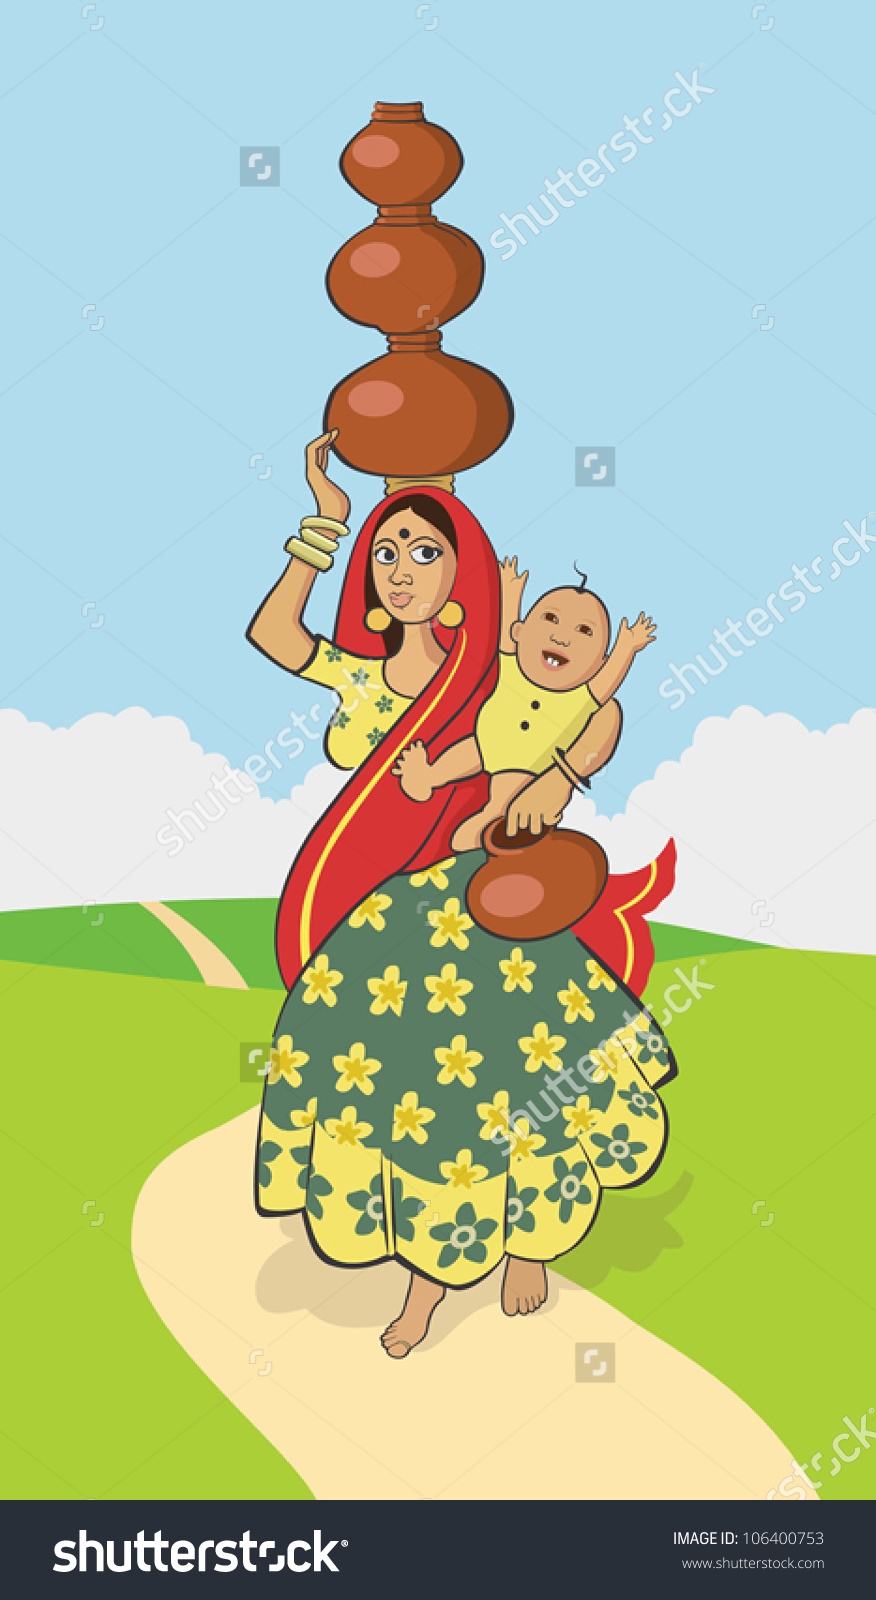 Indian People Tarasco Living In Mexico Clipart.